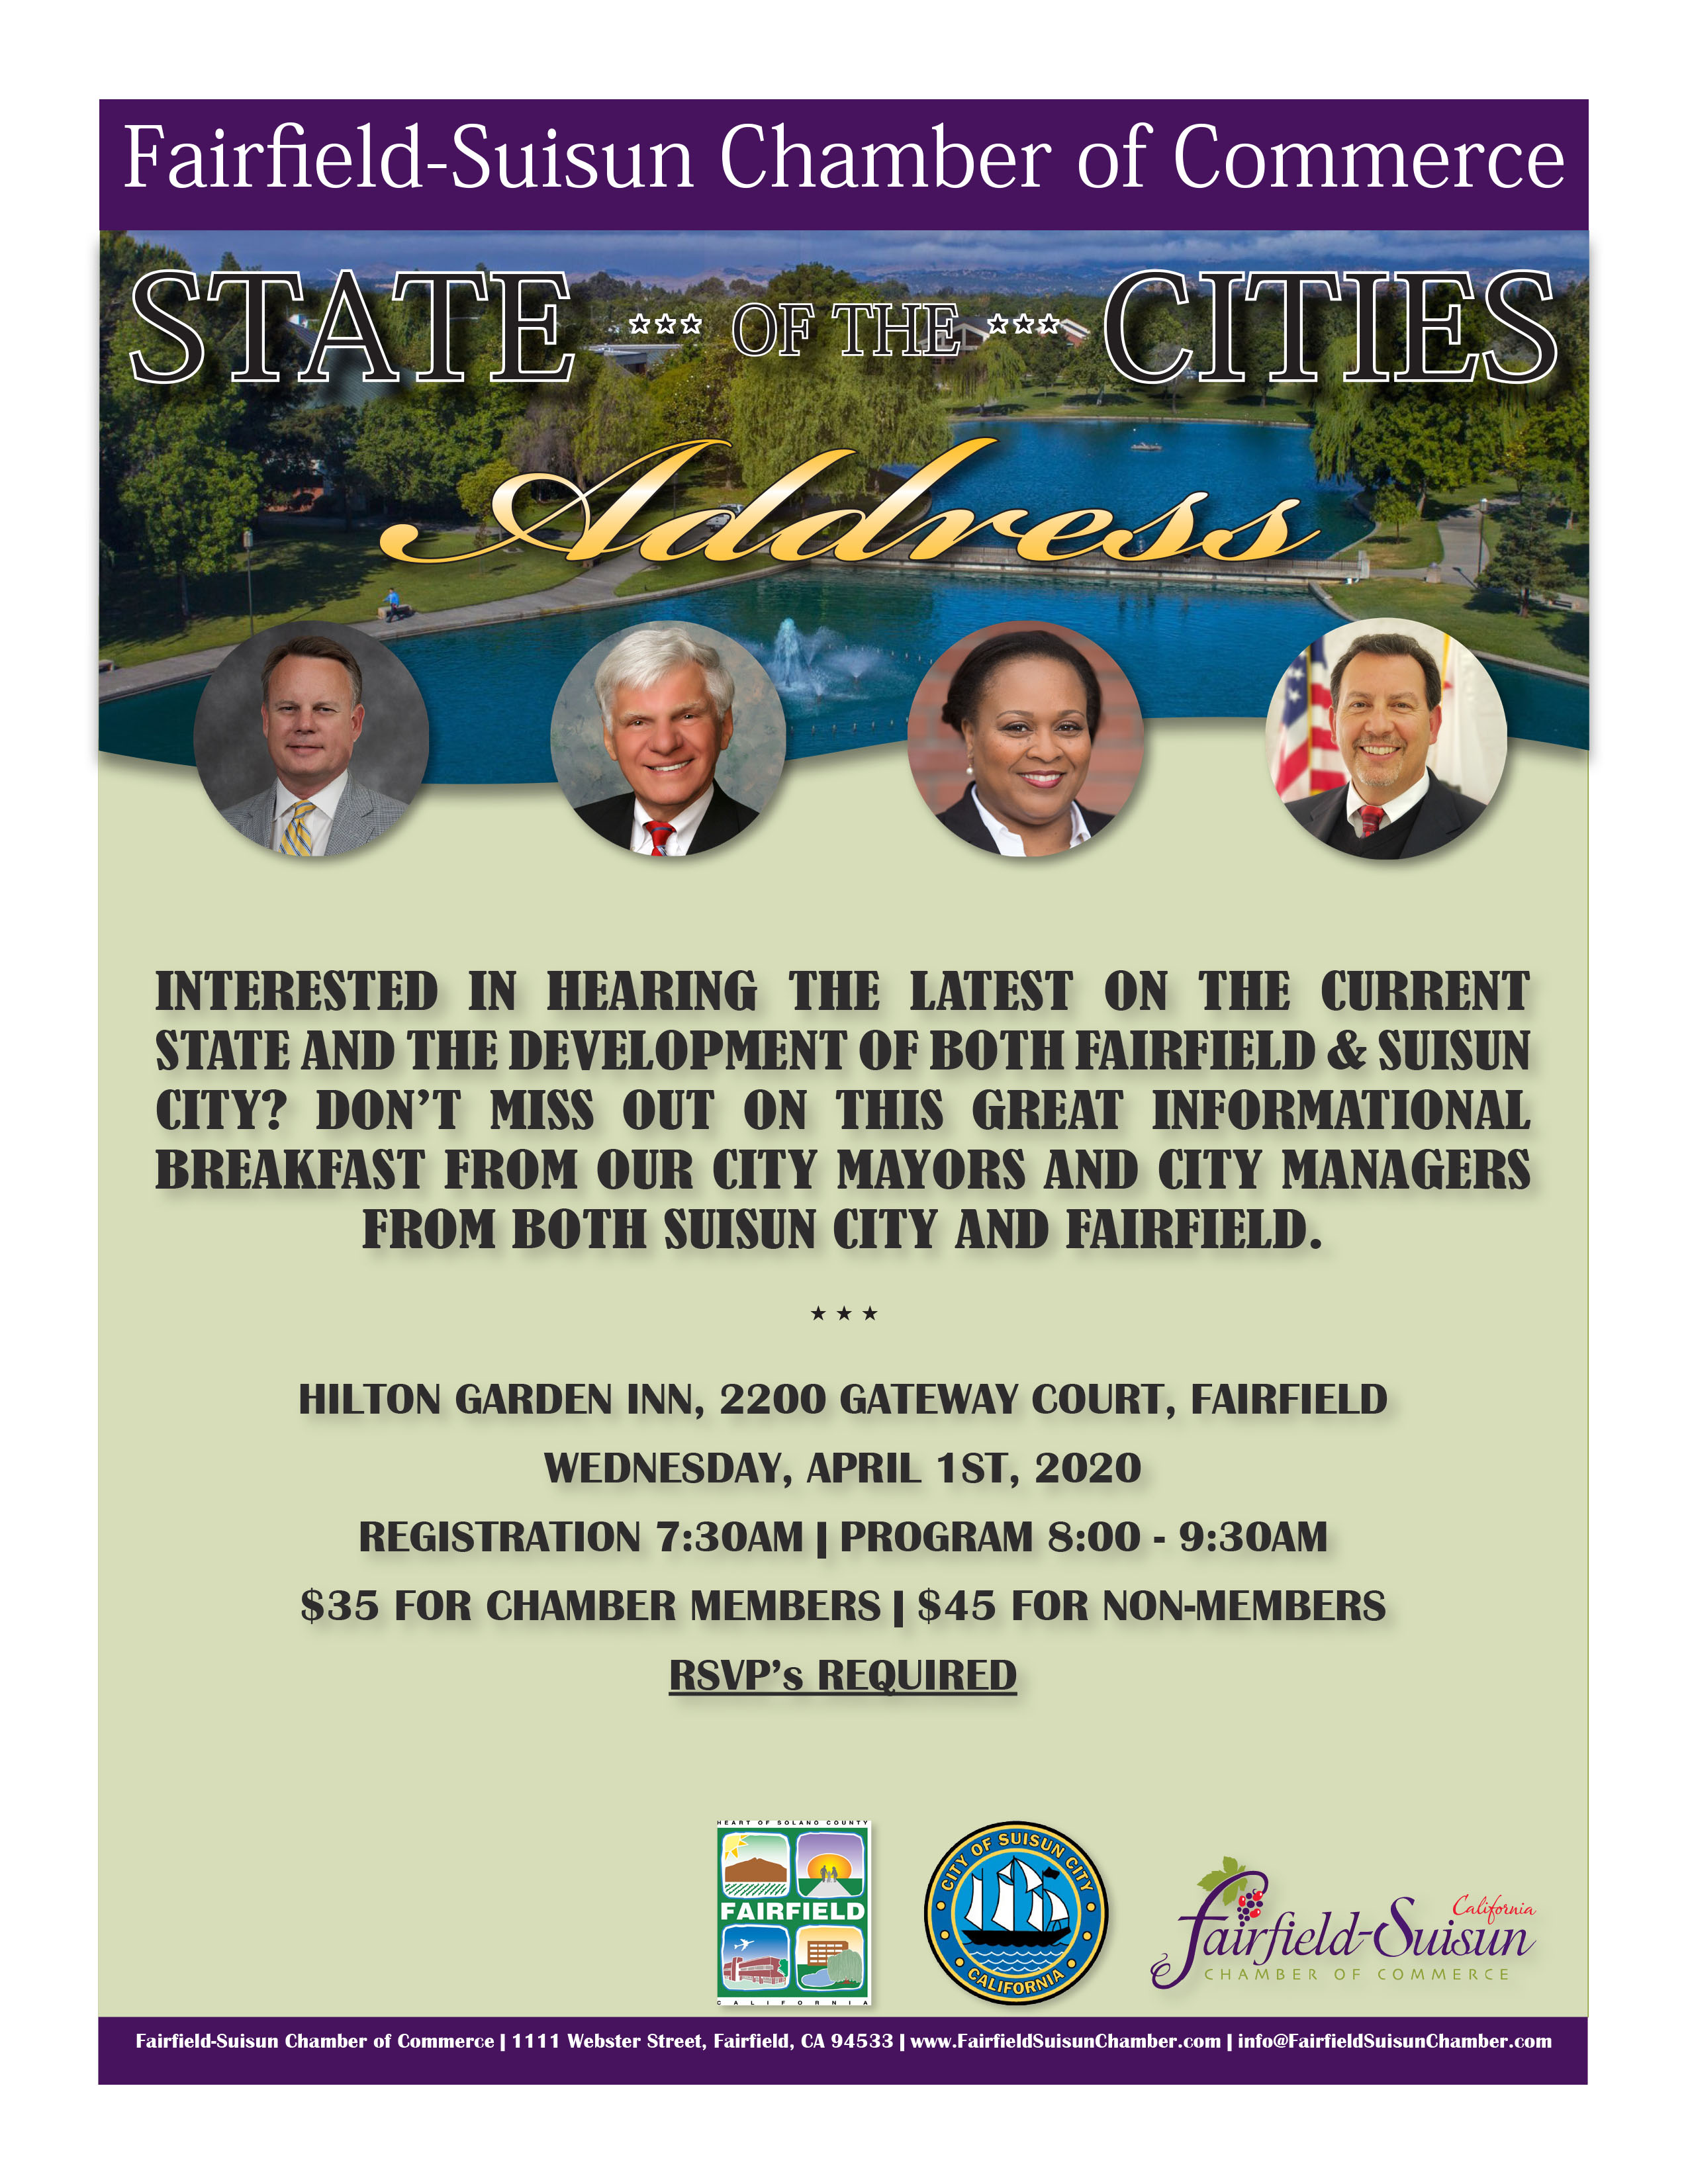 Fairfield_Suisun_Chamber_of_Commerce_State_of_the_Cities_Address_April_2020